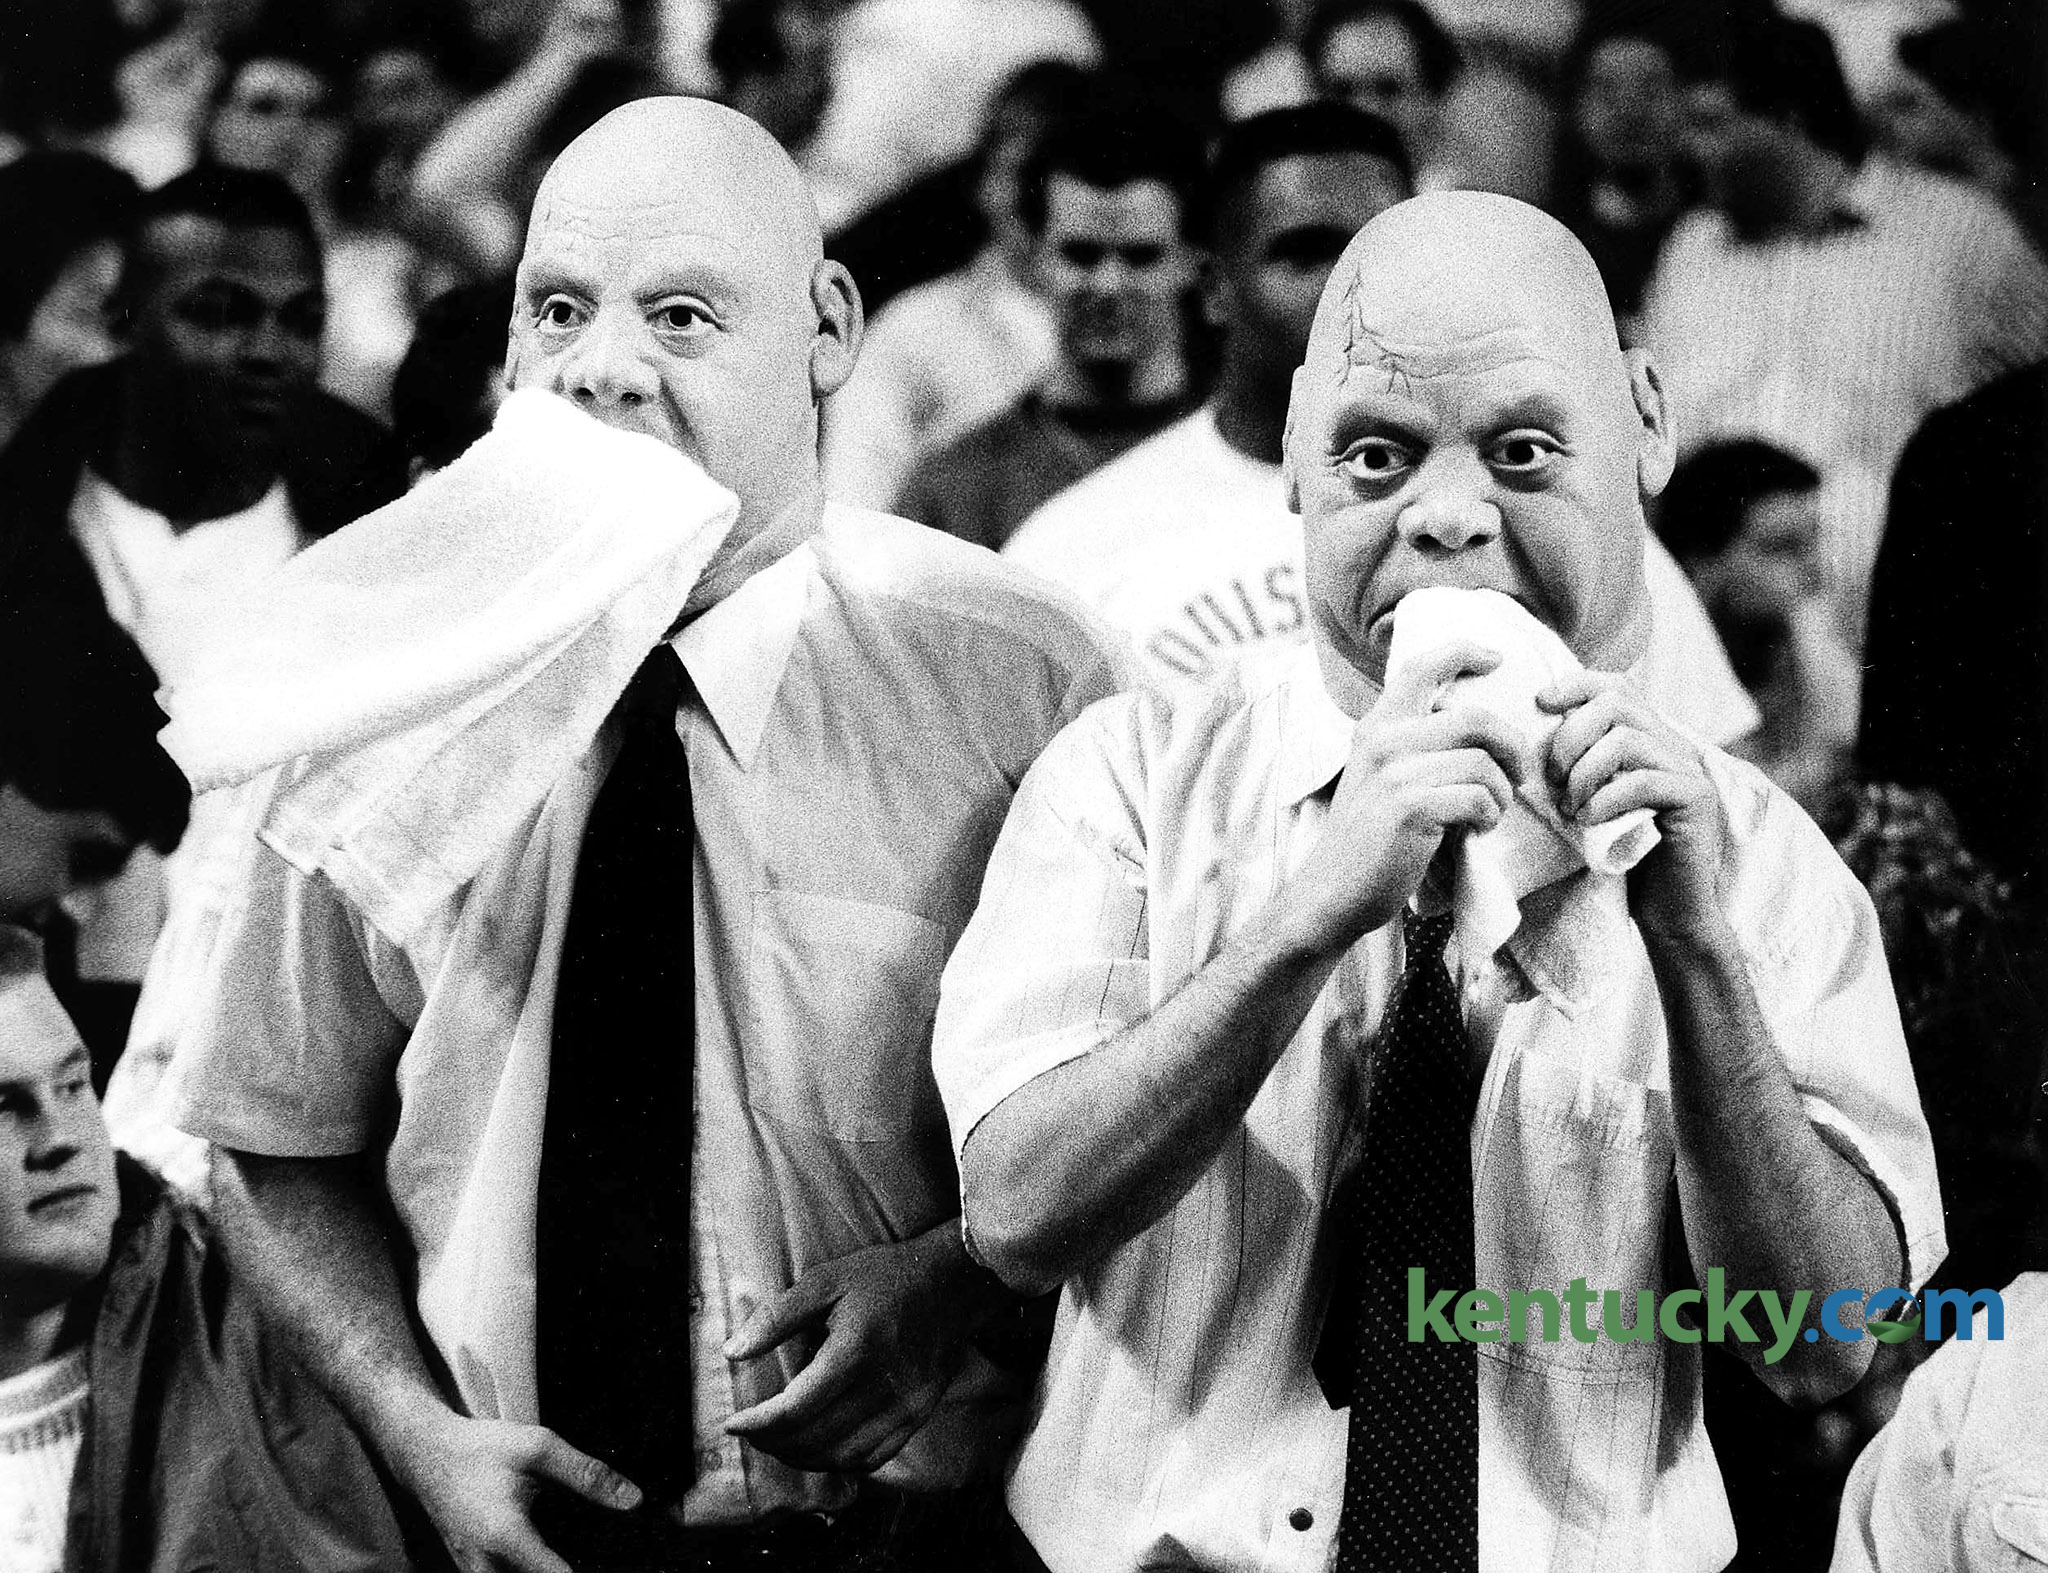 Louisville Basketball Fans Mimic UNLV Coach Jerry Tarkanian During The Cards 97 85 Loss